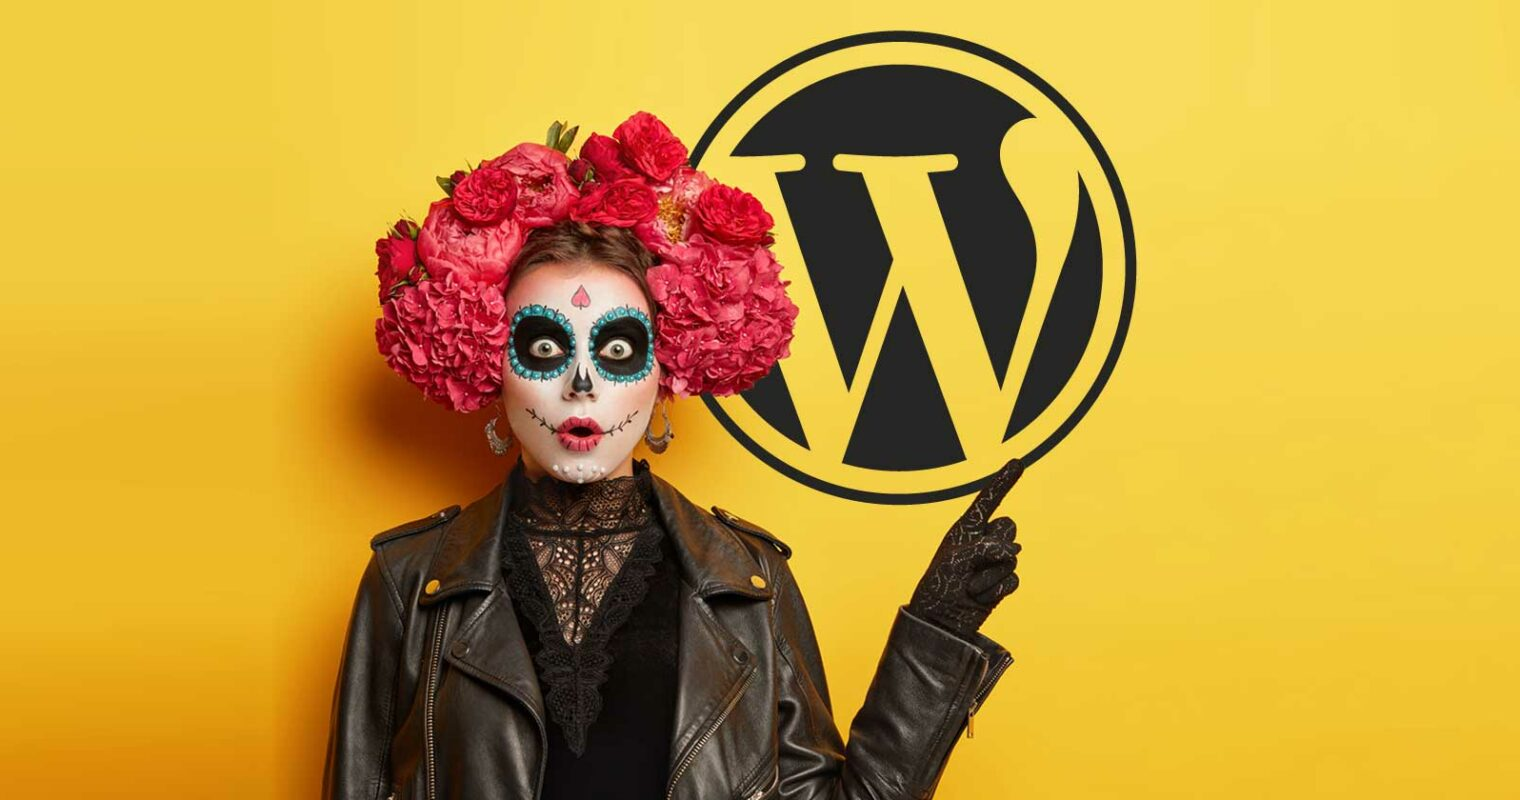 WordPress Update Fiasco